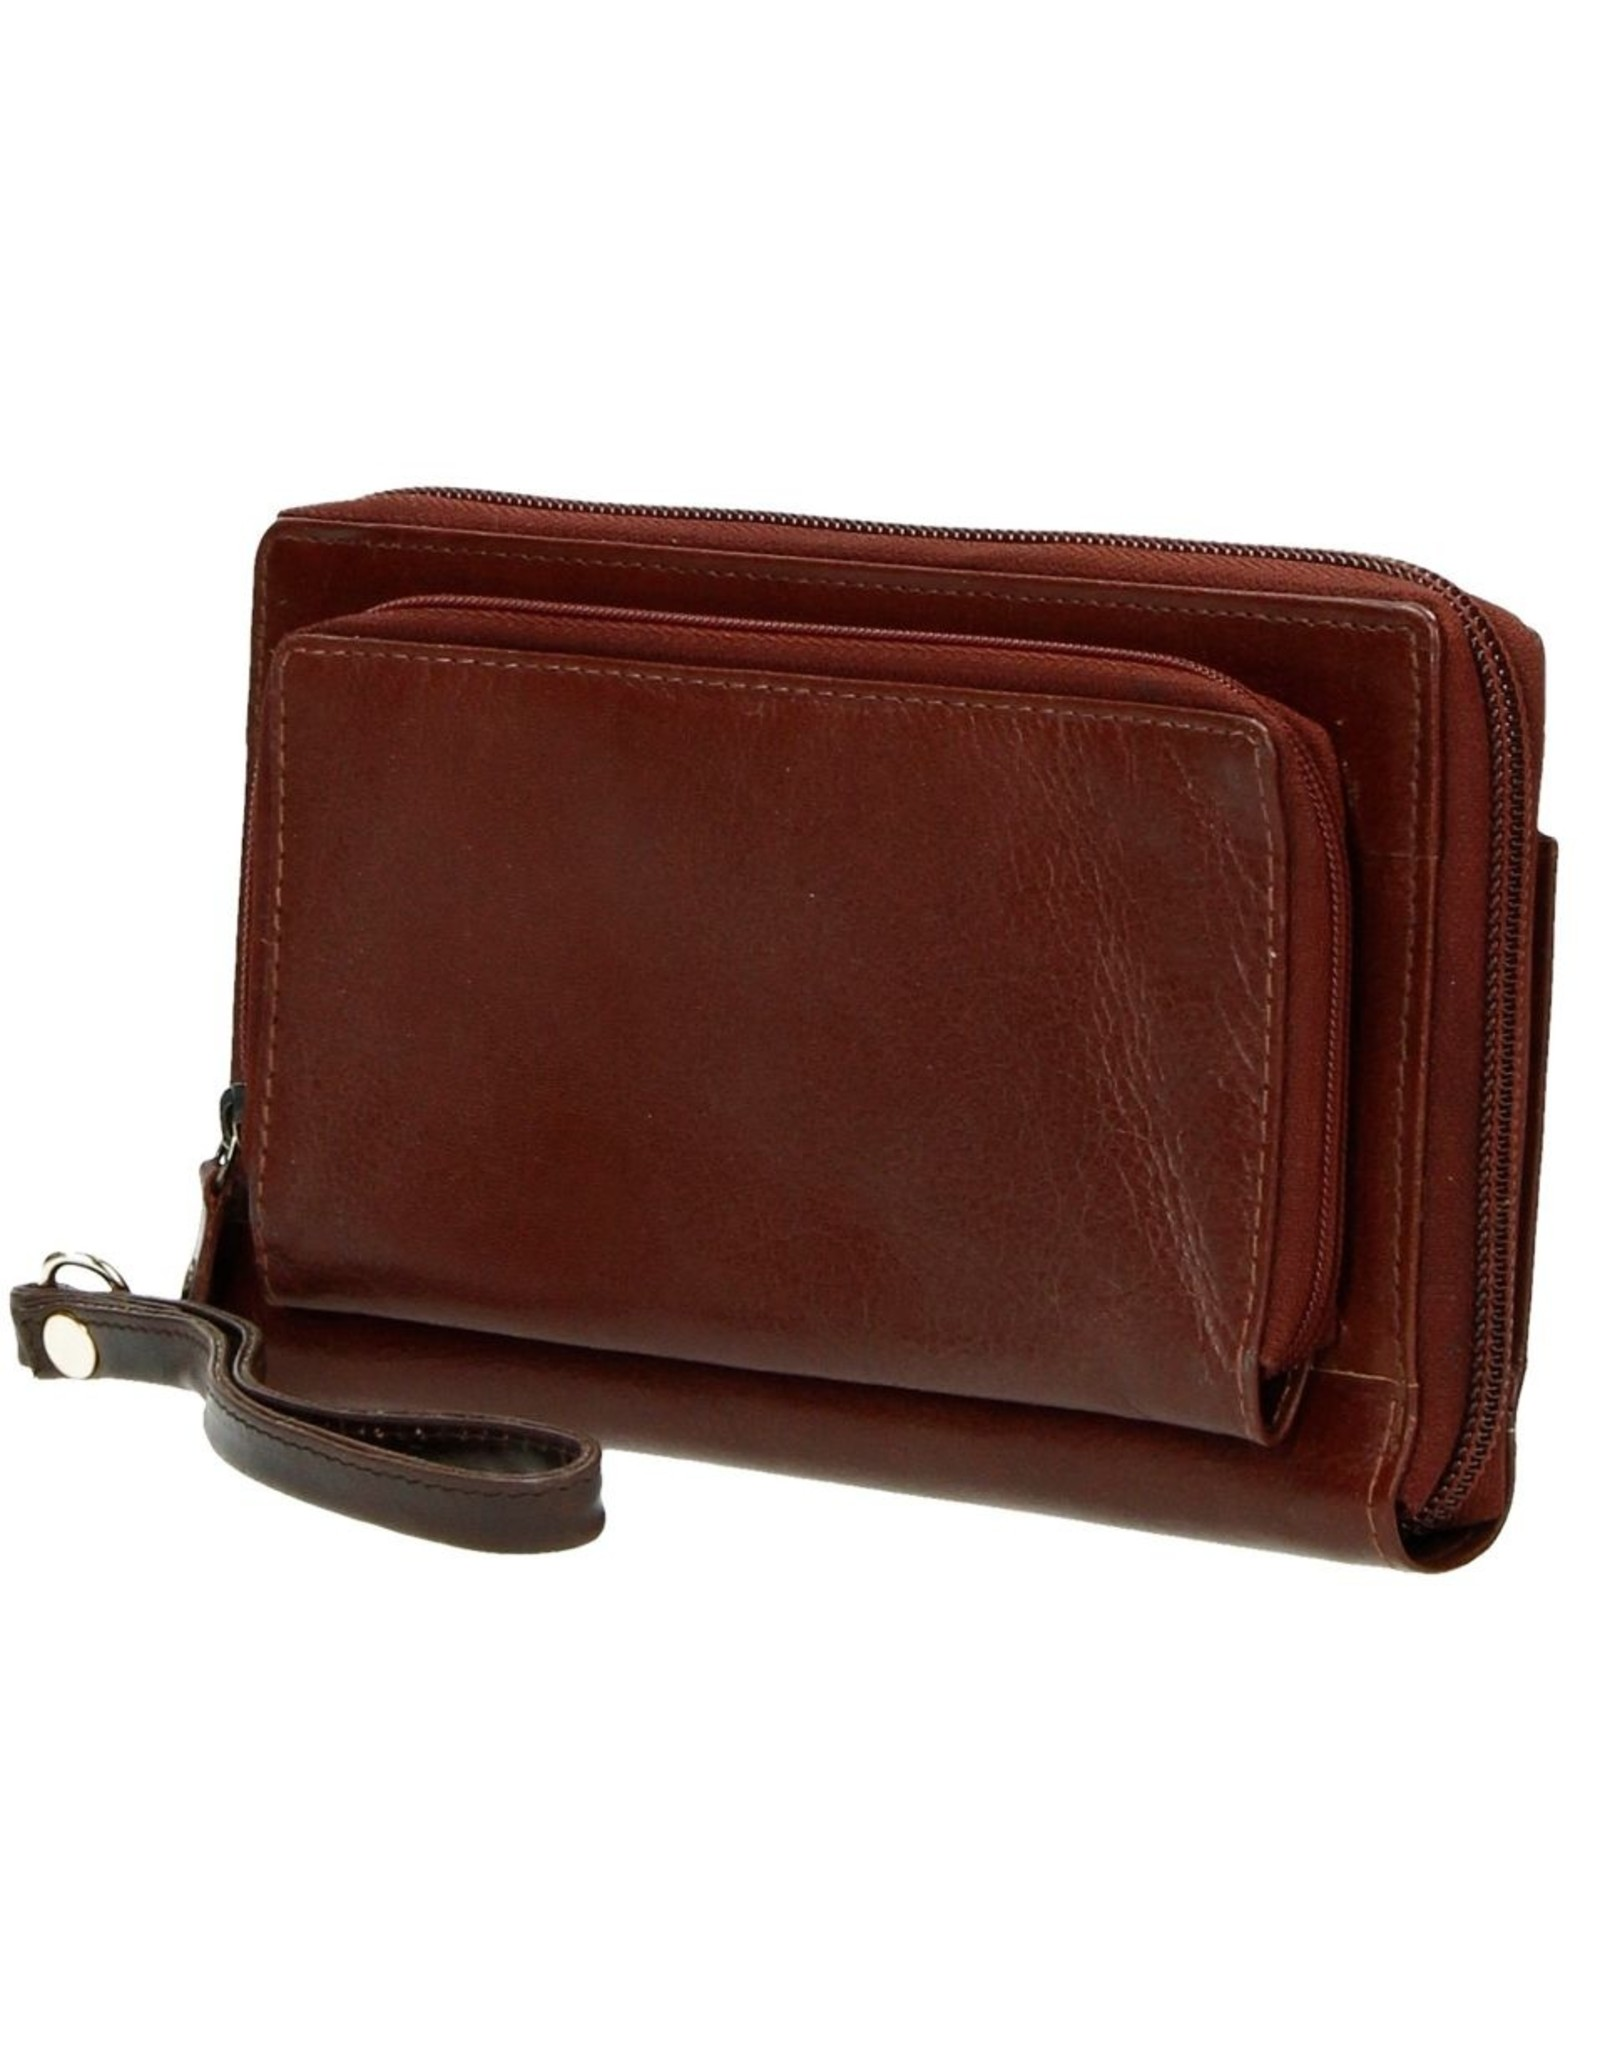 MicMac Leather Wallets - Leather wallet with mobile phone pocket (brown)